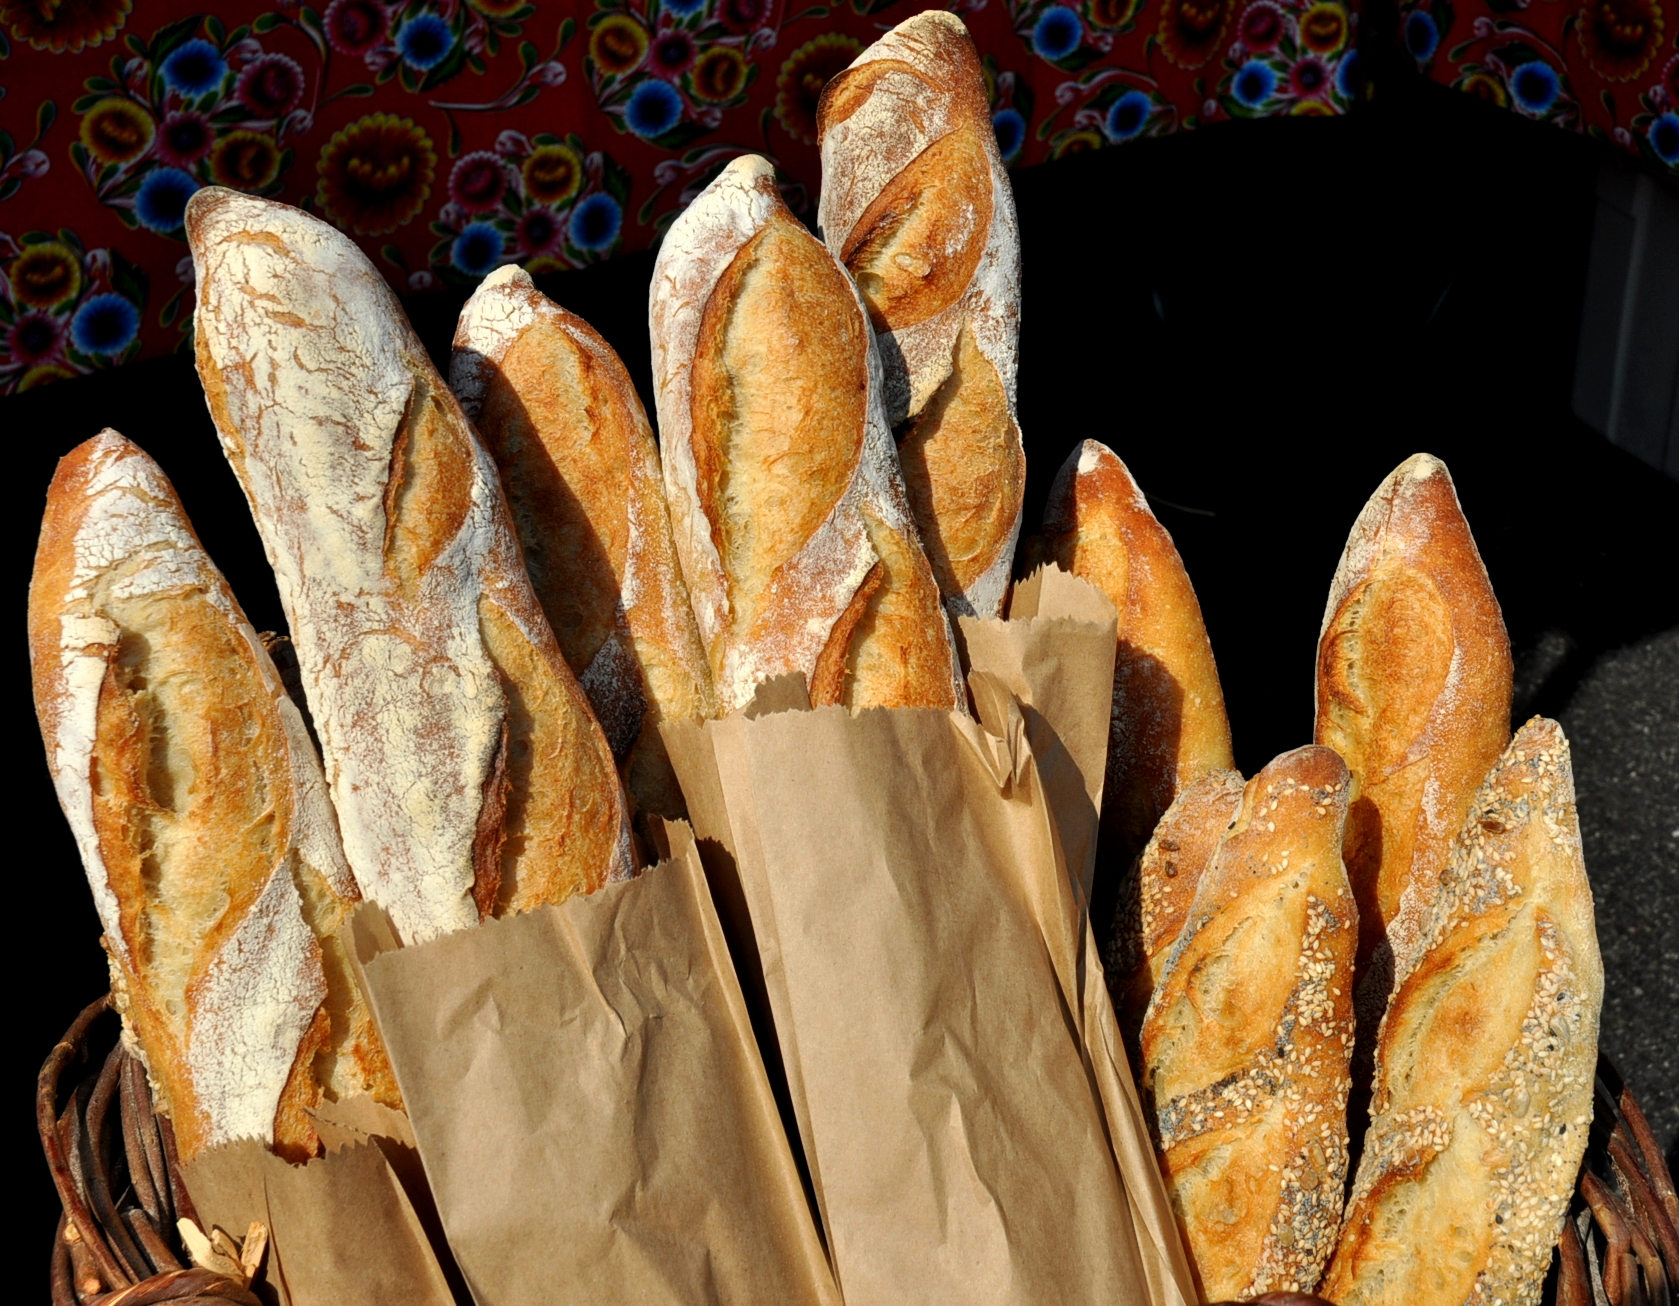 Baguettes from Tall Grass Bakery. Photo copyright 2010 by Zachary D. Lyons.